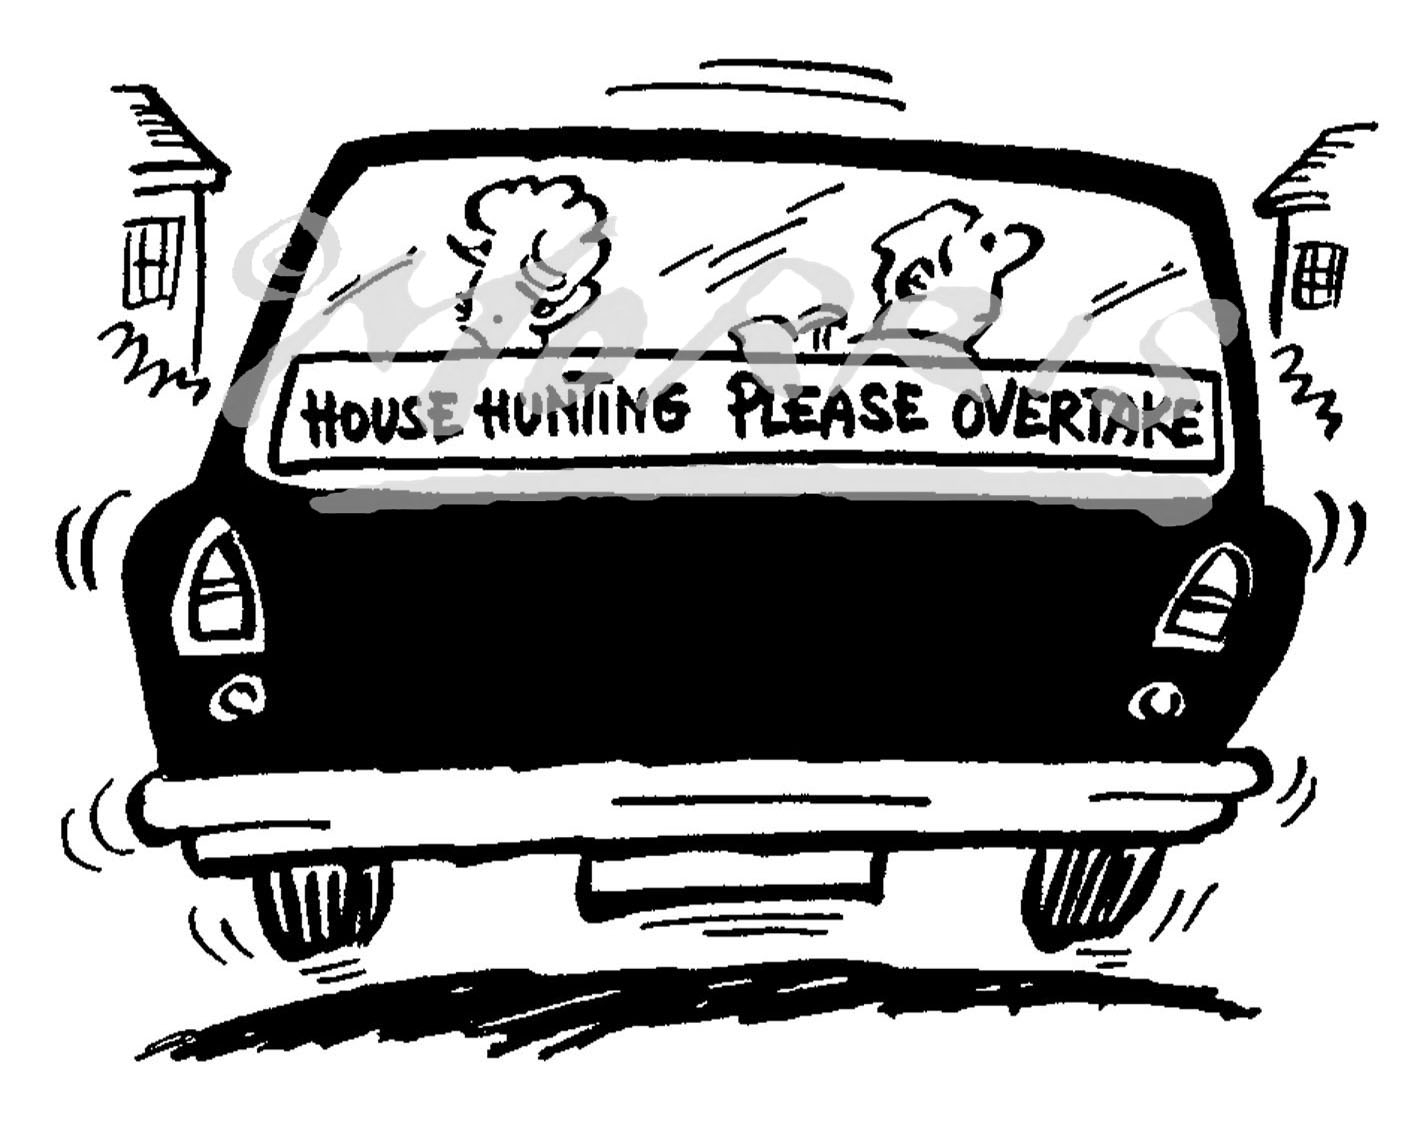 Real Estate Agent property comic cartoon Ref: 0318bw